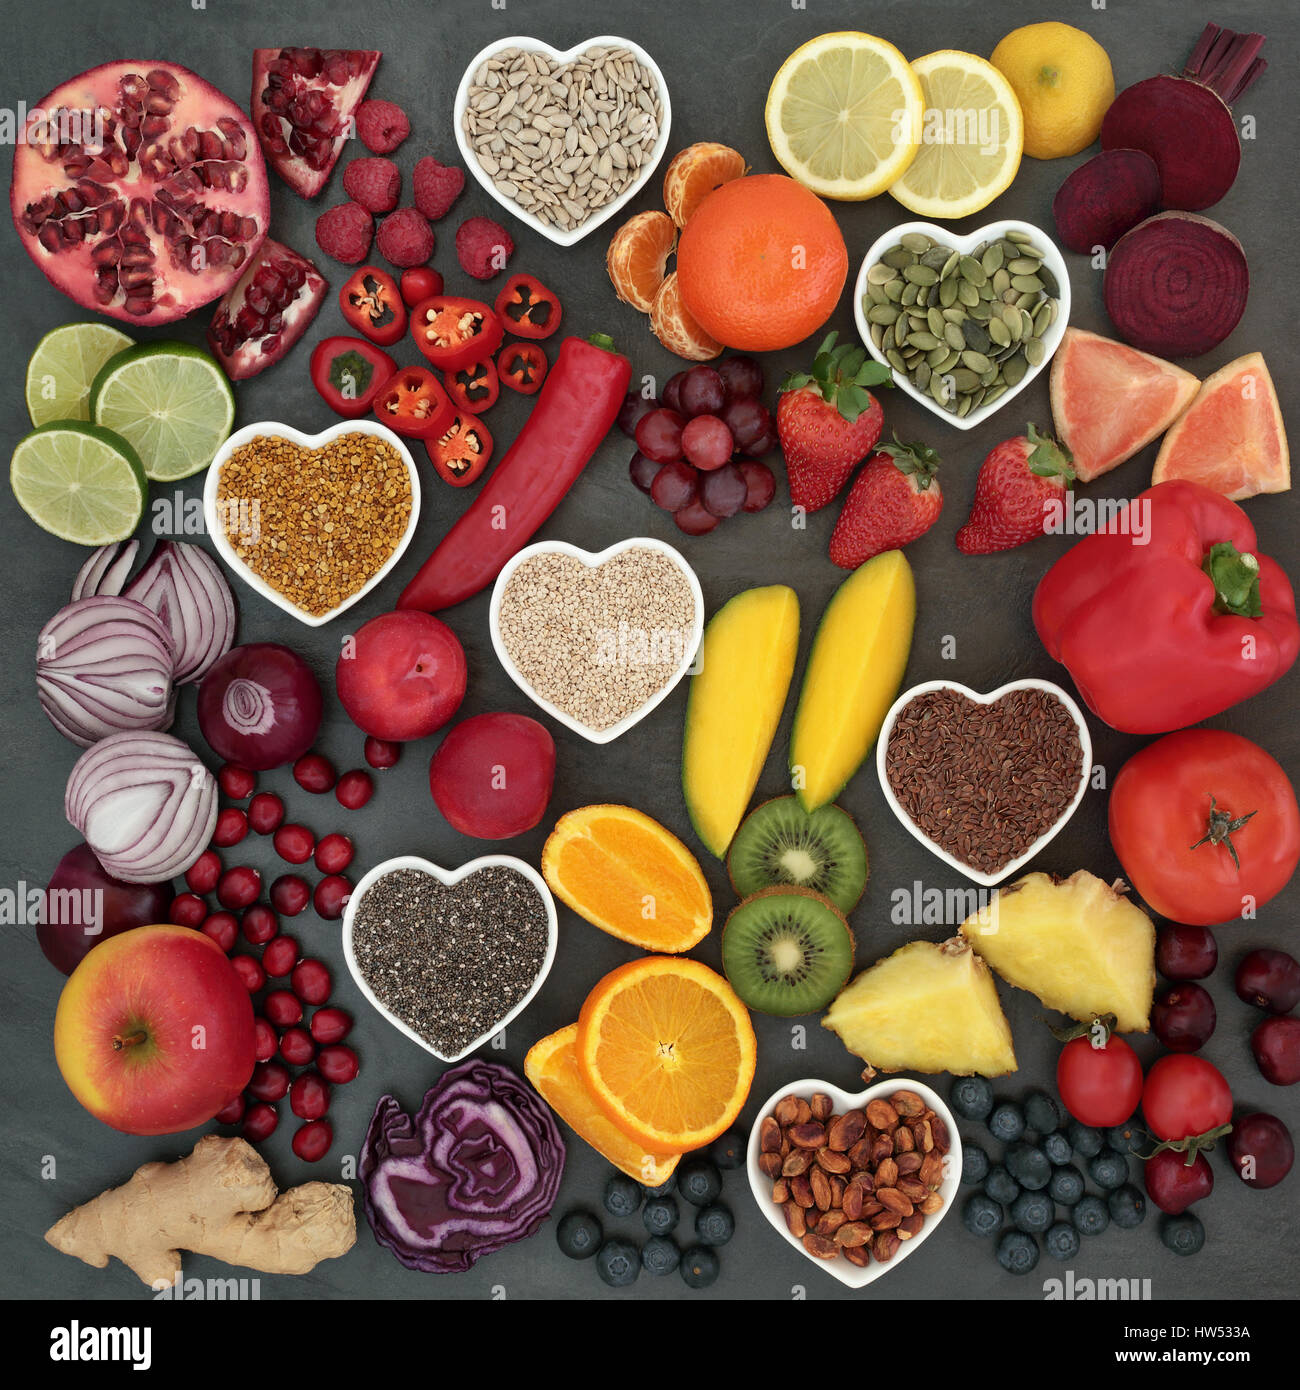 Palaeolithic diet food of fresh fruit, vegetables, nuts and seeds on slate background. High in antioxidants, vitamins, - Stock Image